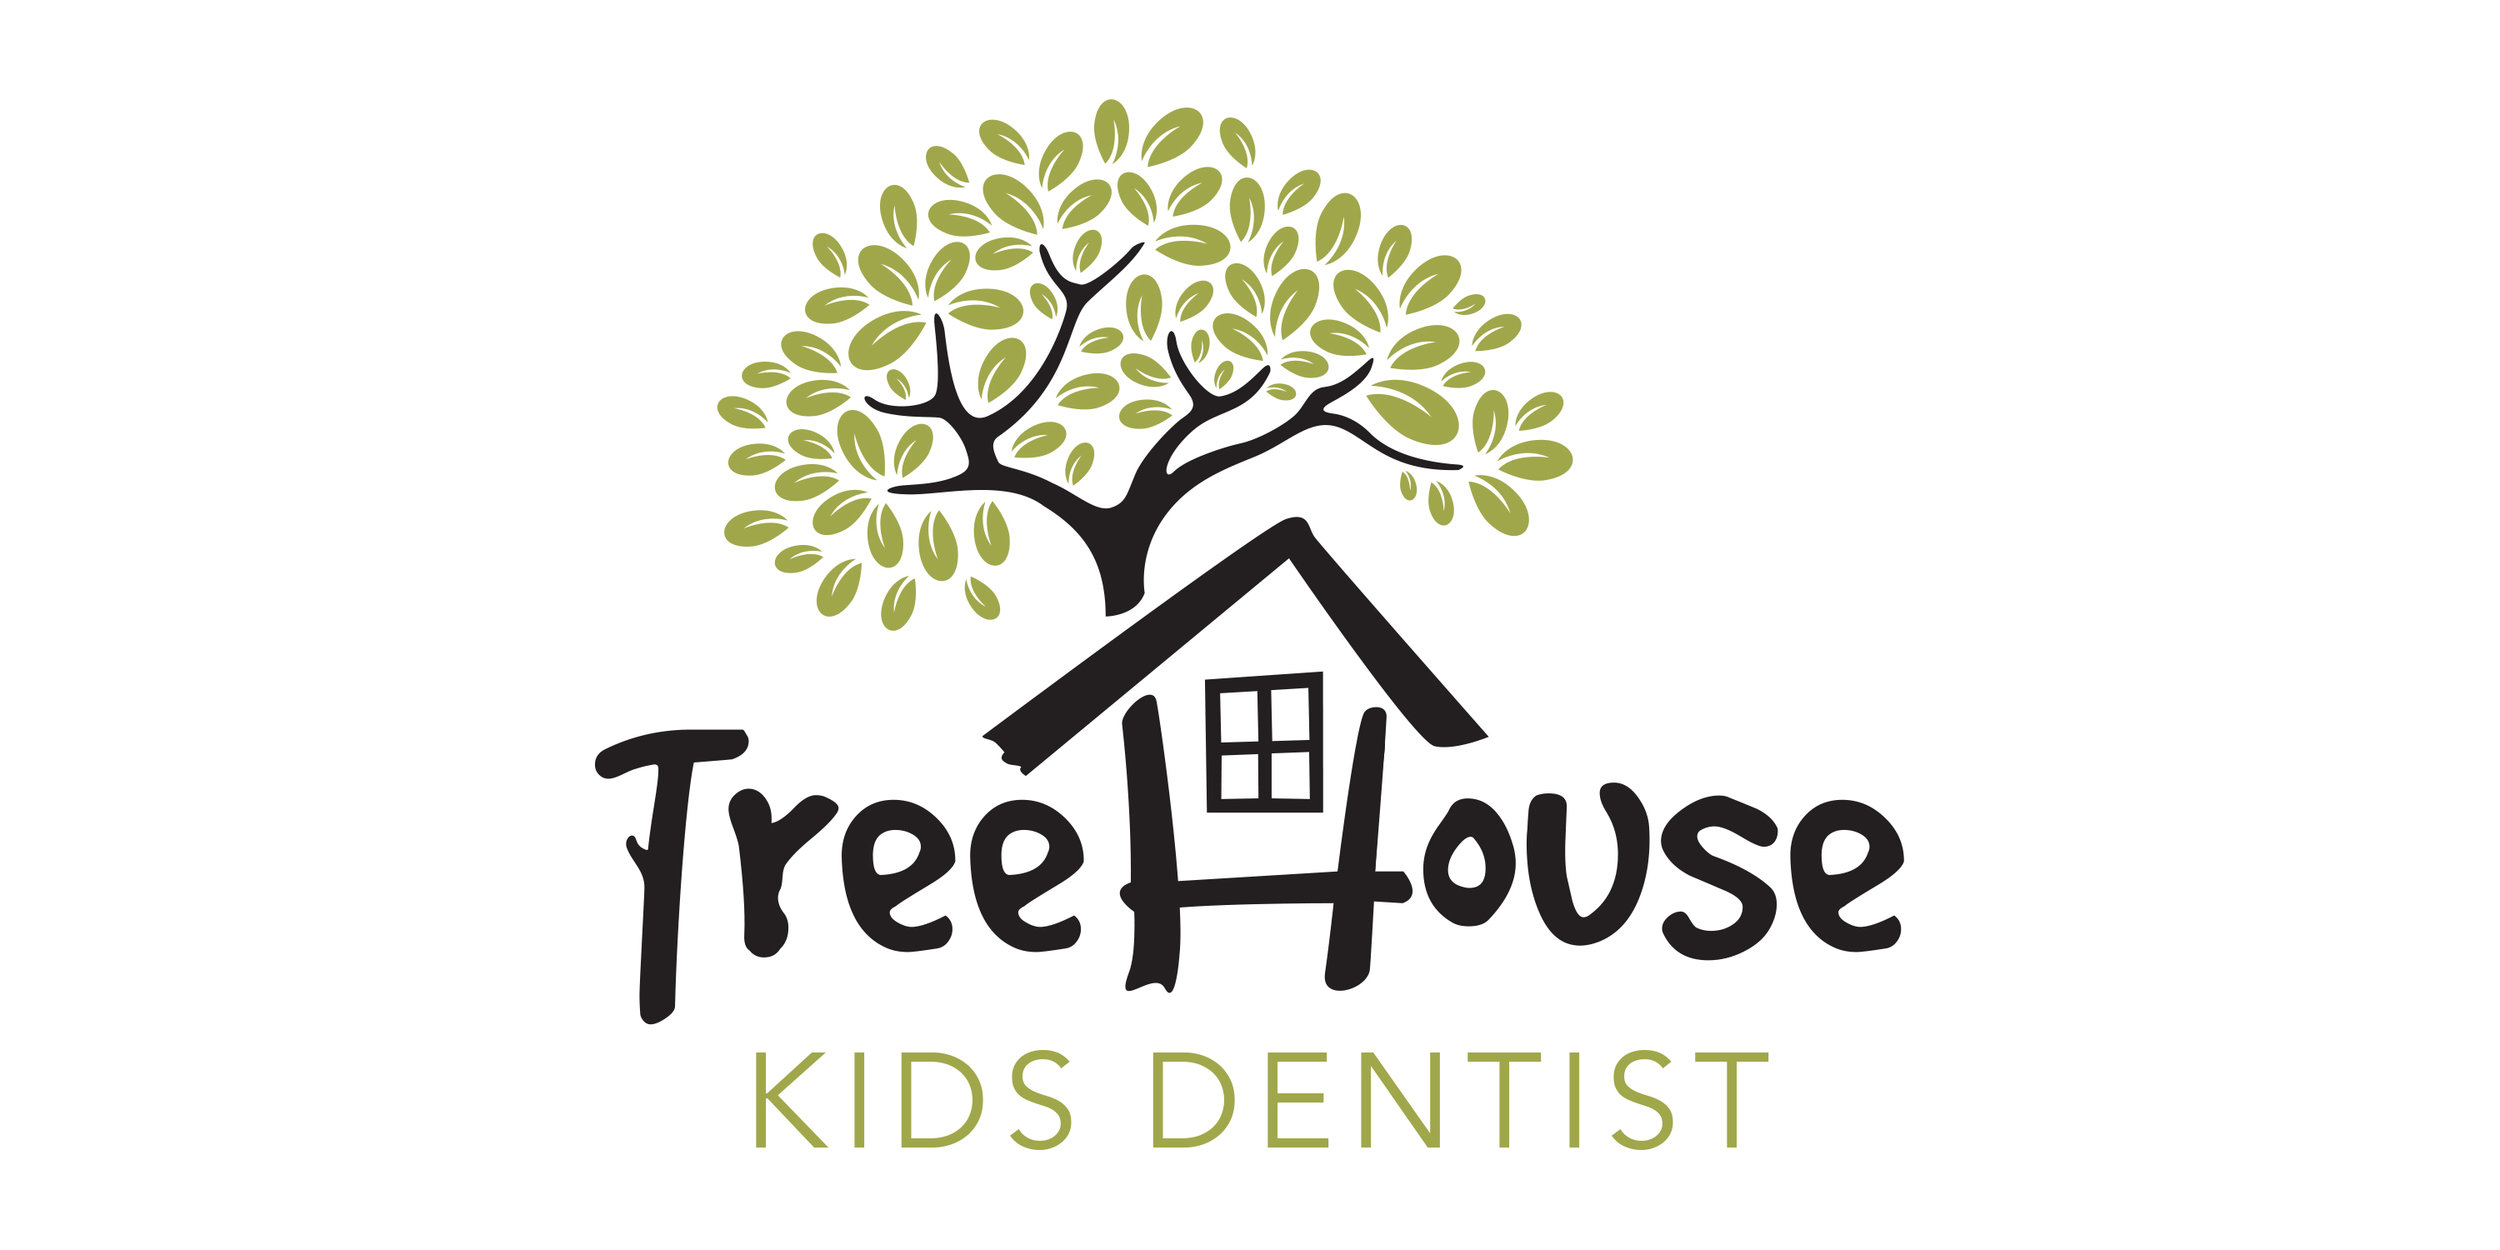 Web_Samples_Treehouse_Logos4.jpg